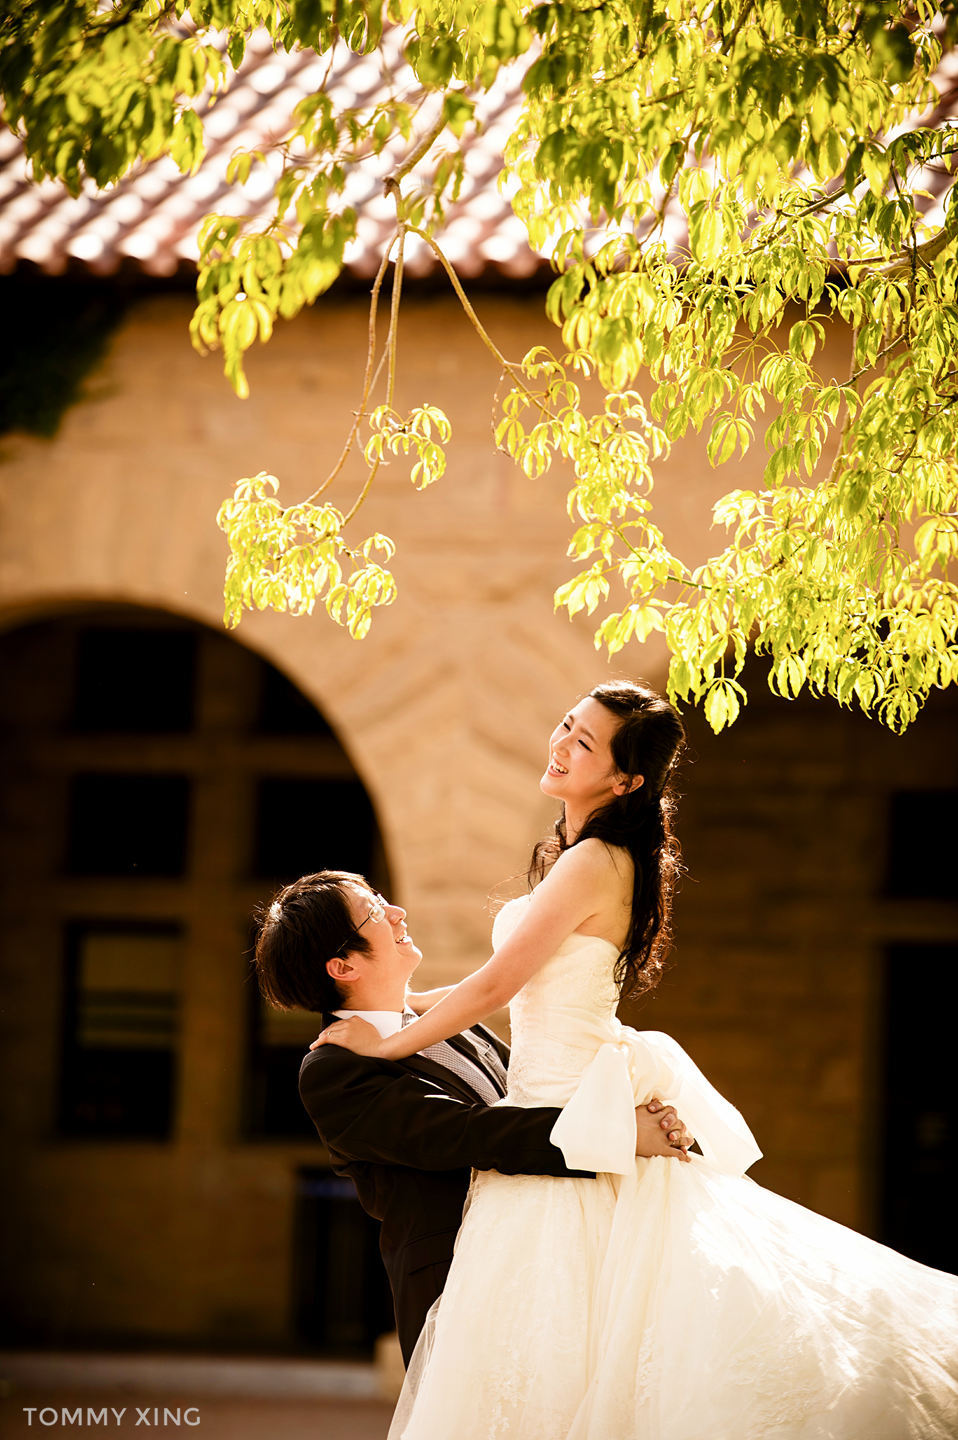 San Francisco Pre-Wedding Jiia Xu & Zhao Xu 旧金山湾区婚纱照 Tommy Xing Photography 11.jpg